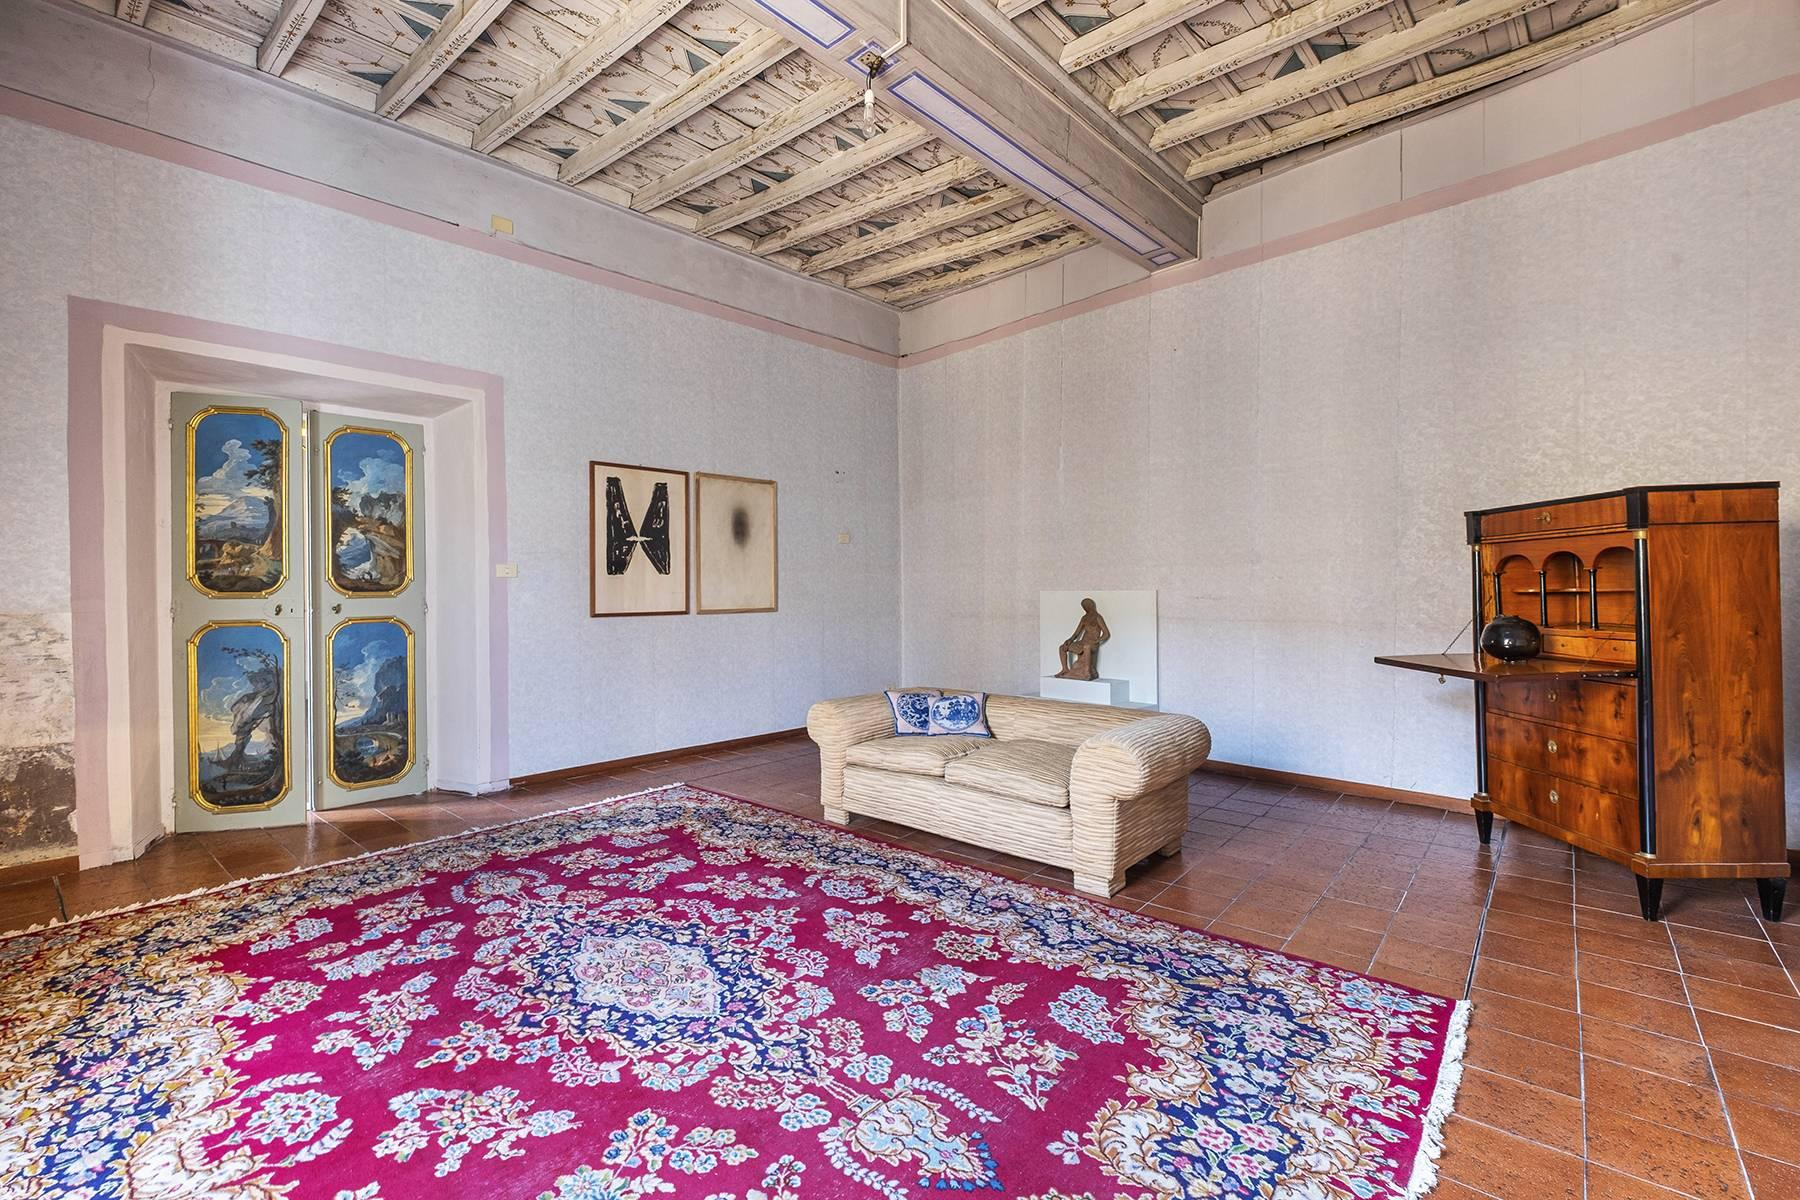 Magnificent apartment in historical property - 13